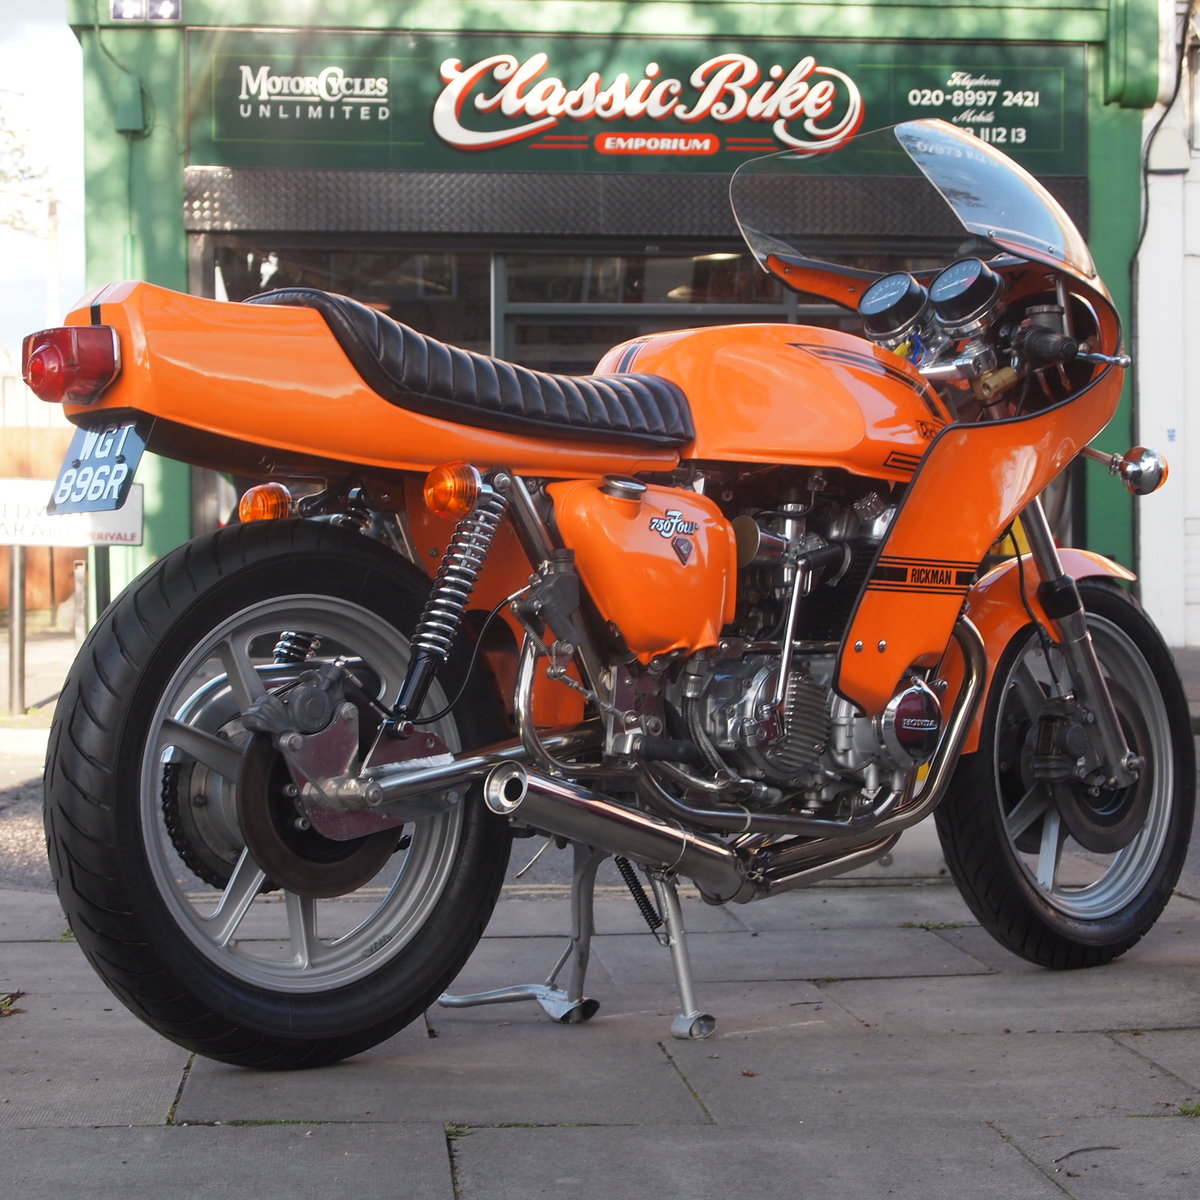 1976 Rickman CR750 Factory Built In January 1977 For Sale (picture 1 of 6)